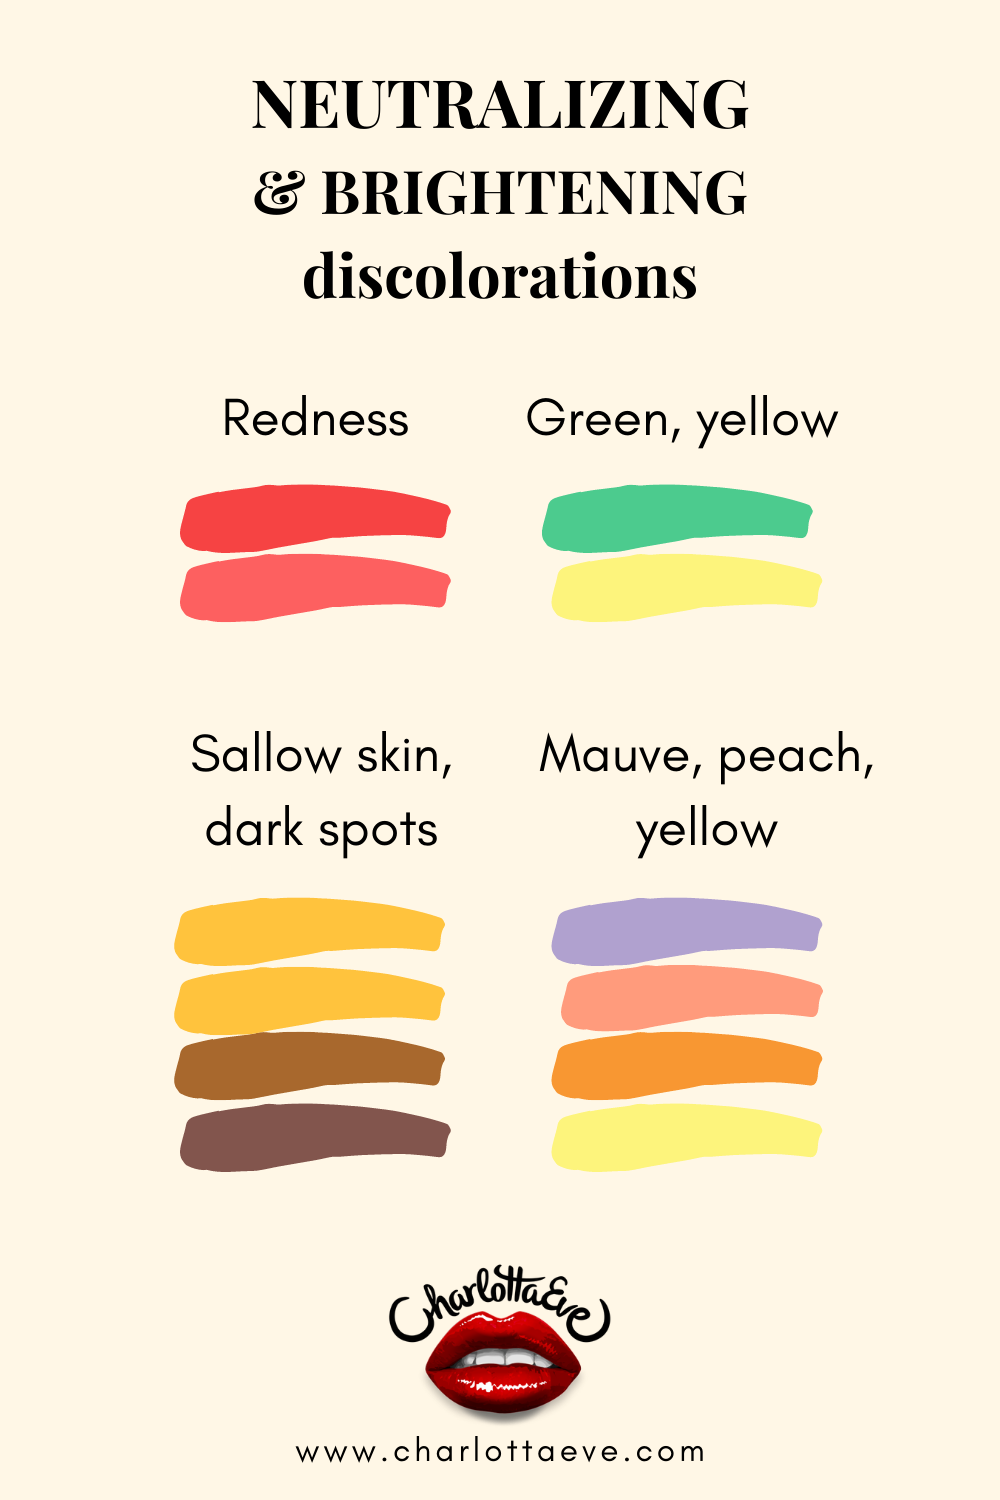 neutralizing brigthening discoloration chart